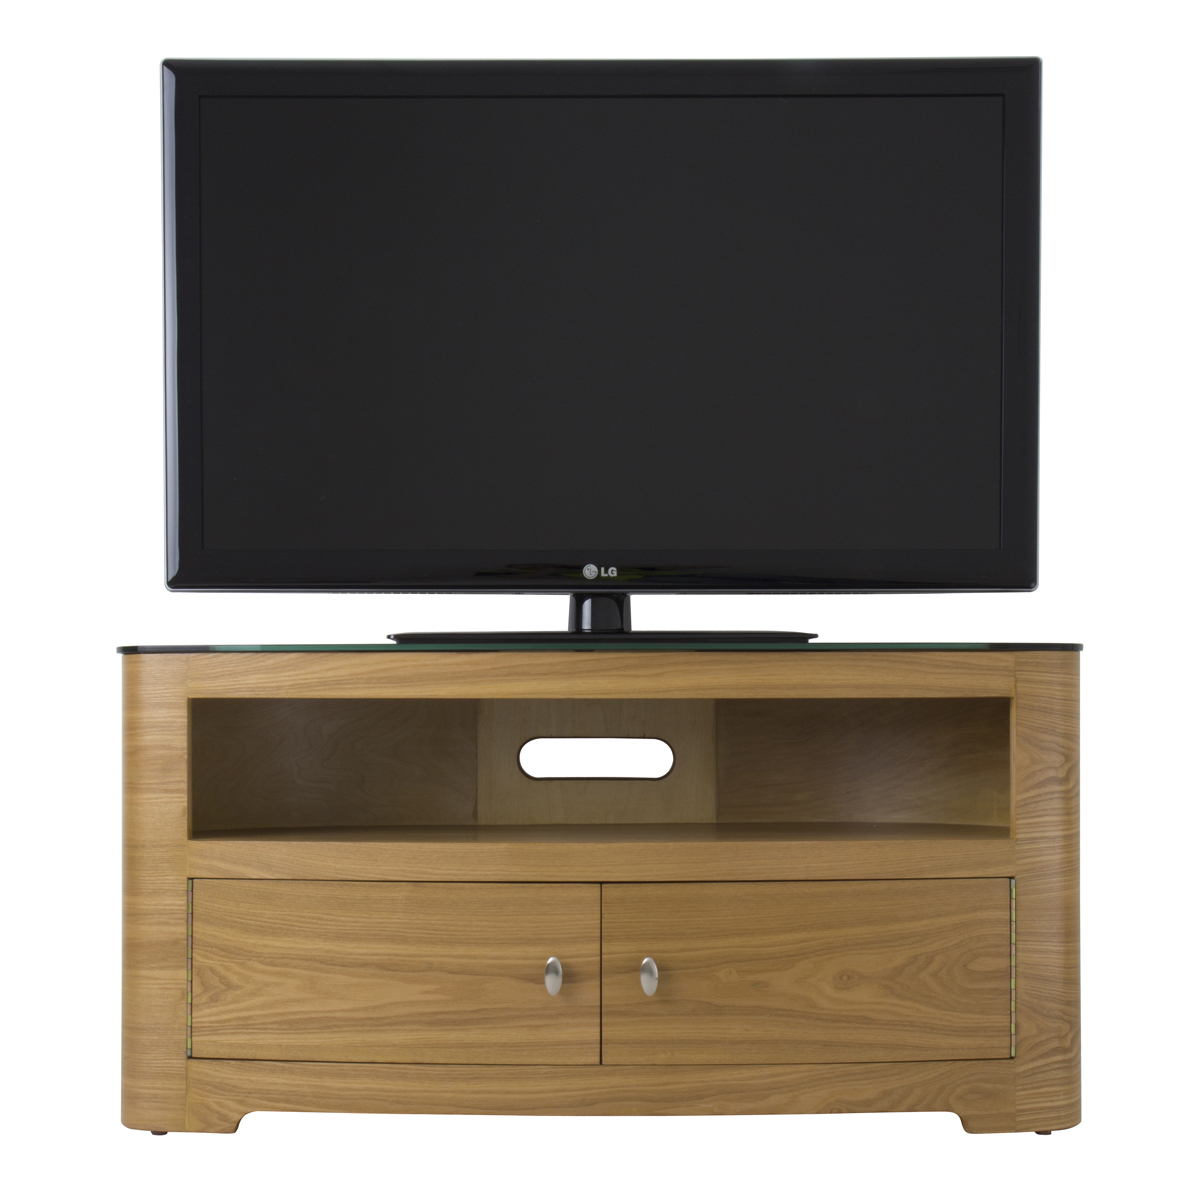 Large Oak Veneer Oval Lcd Plasma Tv Stand Cabinet 42+ Inch Inside Oval Tv Unit (View 8 of 15)